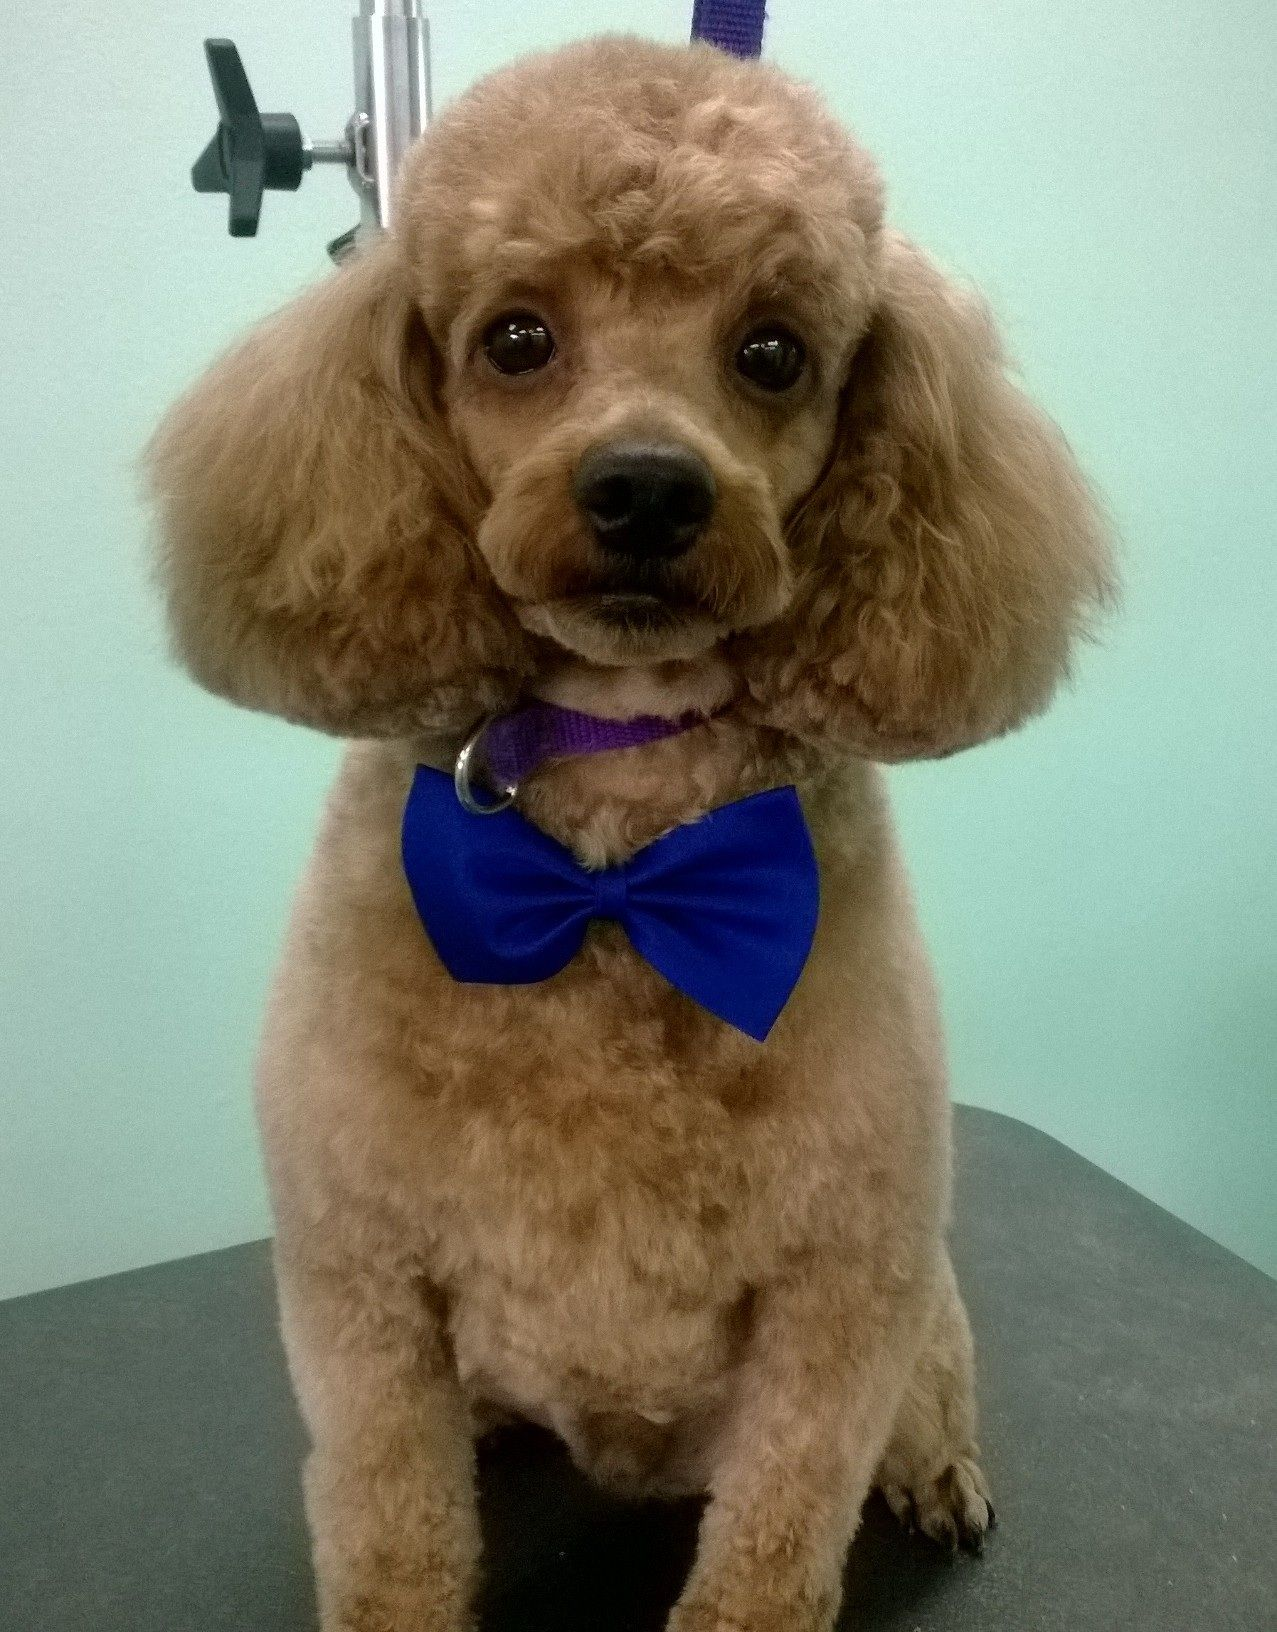 The UpScale Tail, Pet Grooming Salon, Naperville www.theupscaletail.us ✂️